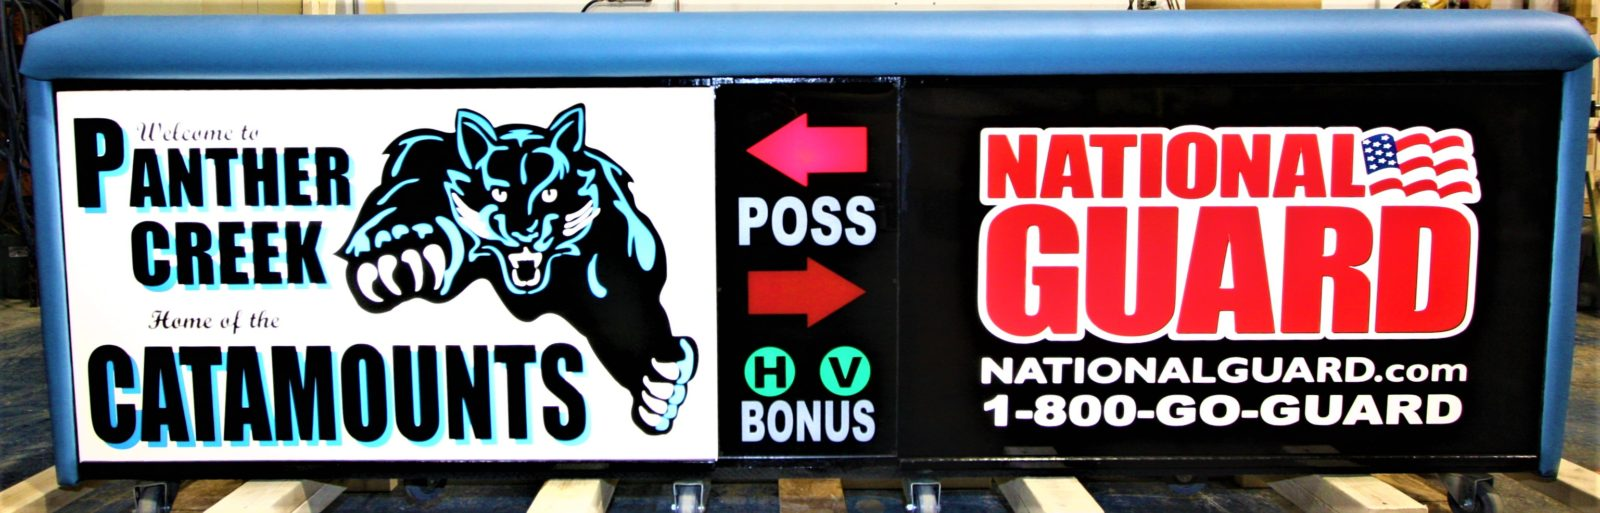 Panther Creek high school scoring table North Carolina Army National Guard NCARNG